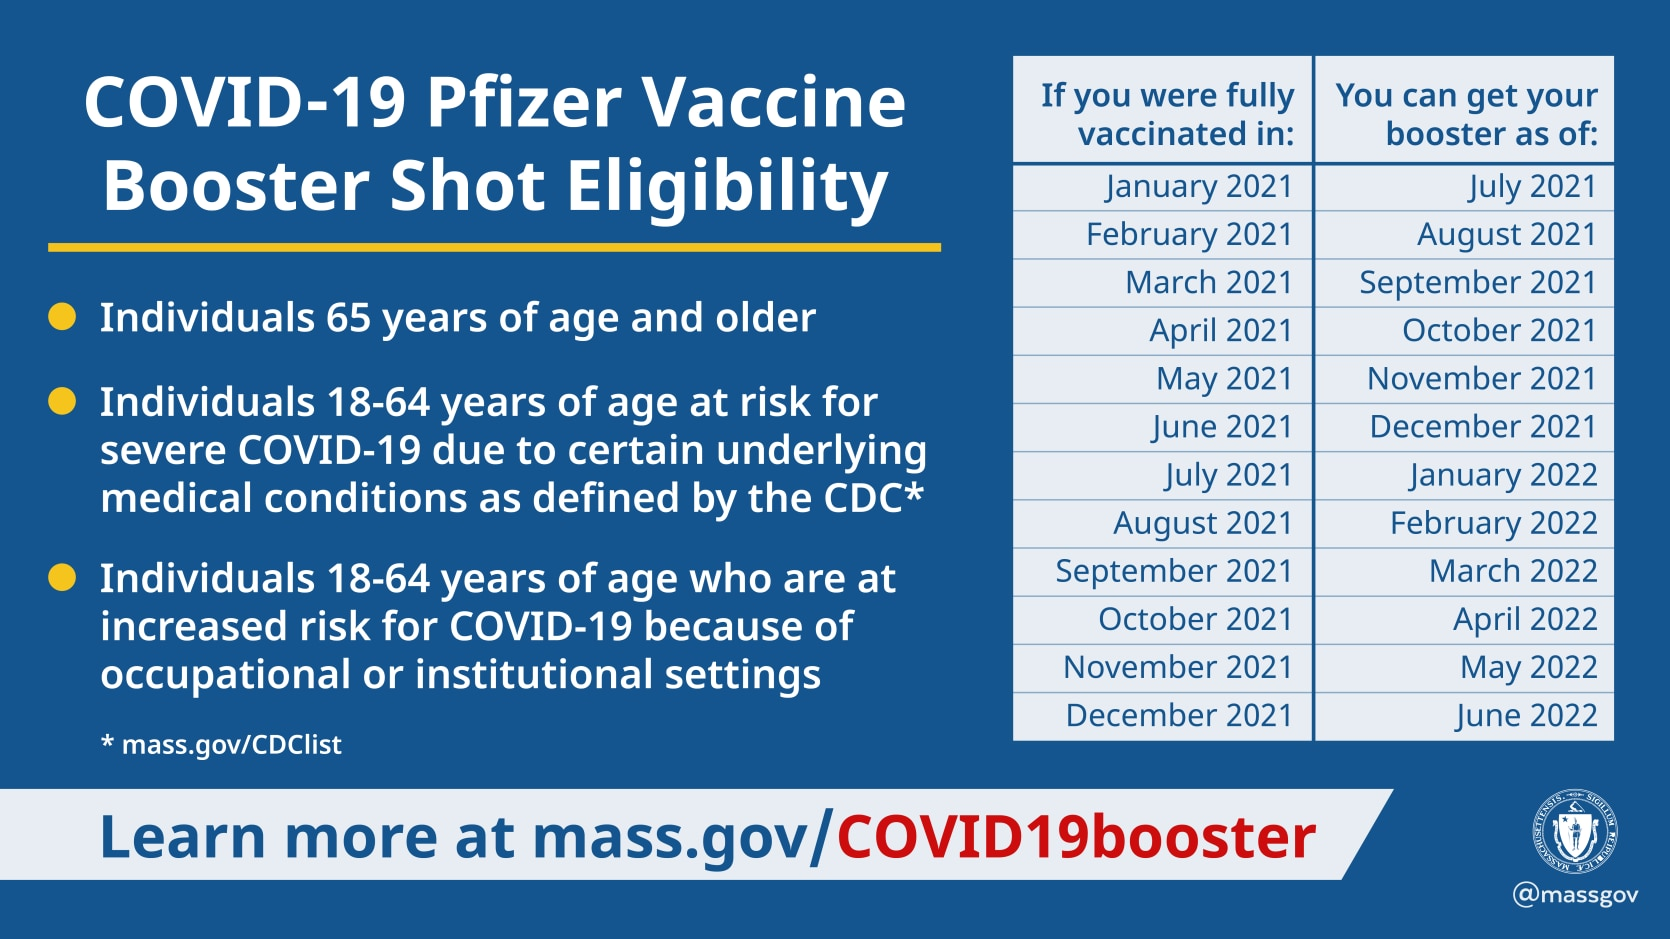 Baker-Polito Administration Provides Update on Pfizer COVID-19 Booster  Availability | Mass.gov